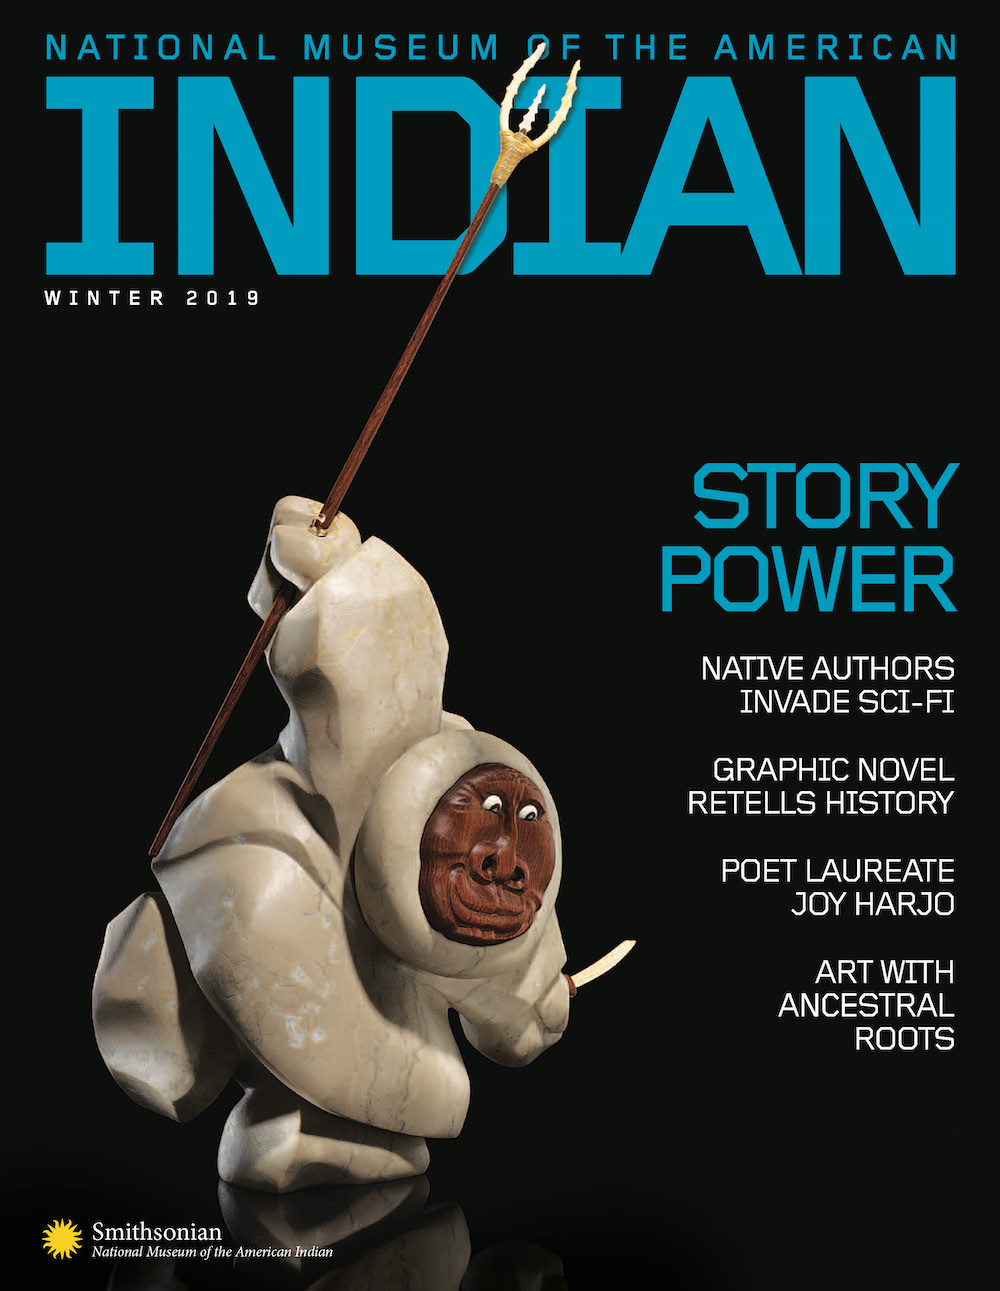 Cover of NMAI Winter 2019